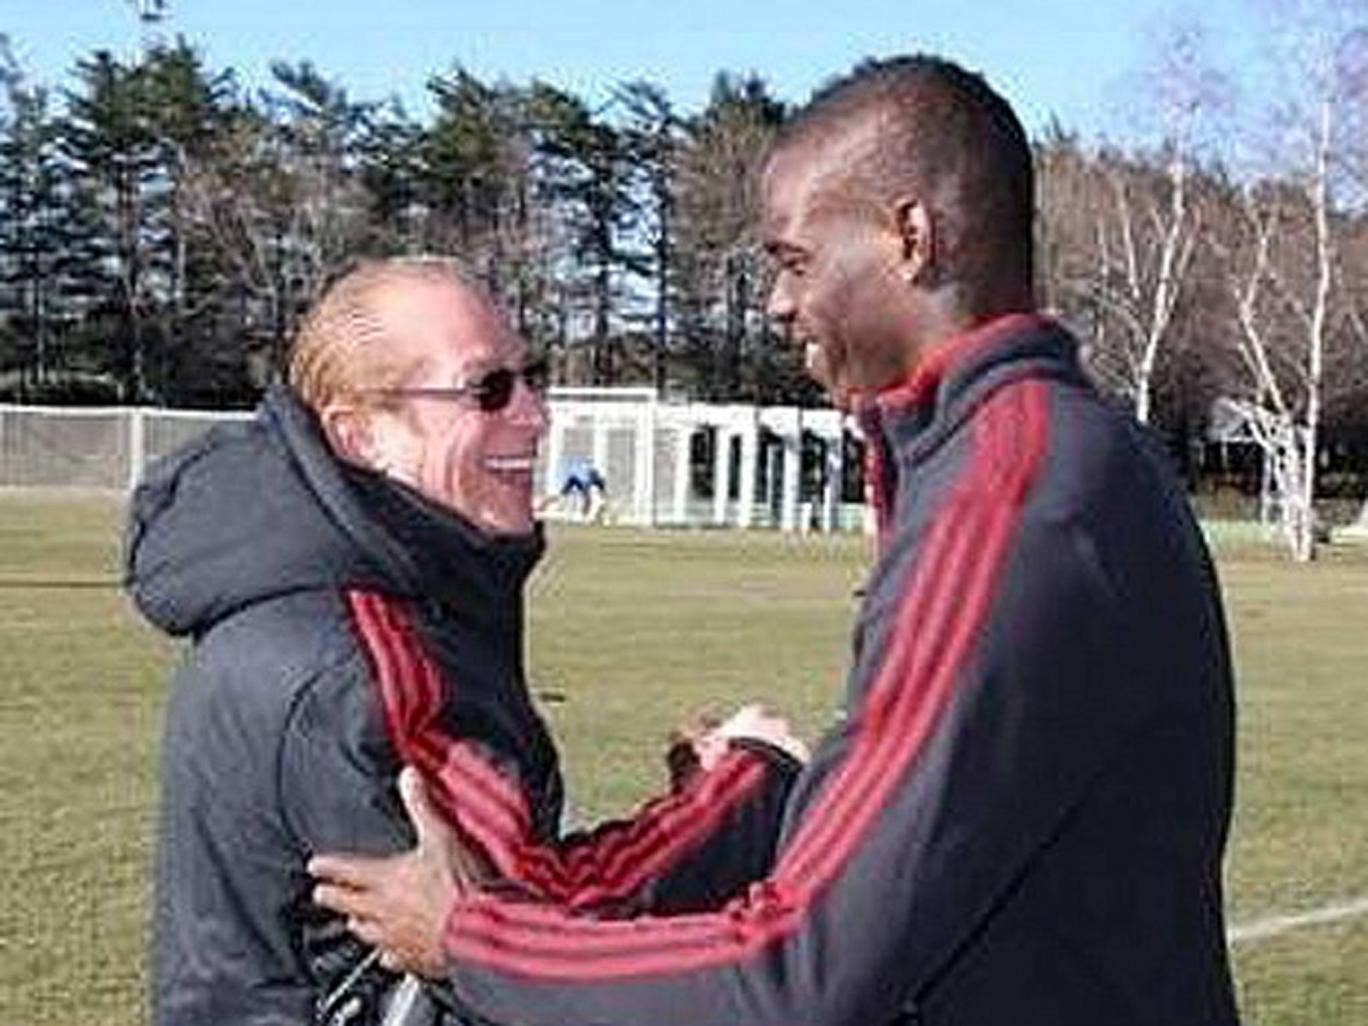 AC Milan released this picture, appearing to show Paolo Berlusconi making peace with Balotelli